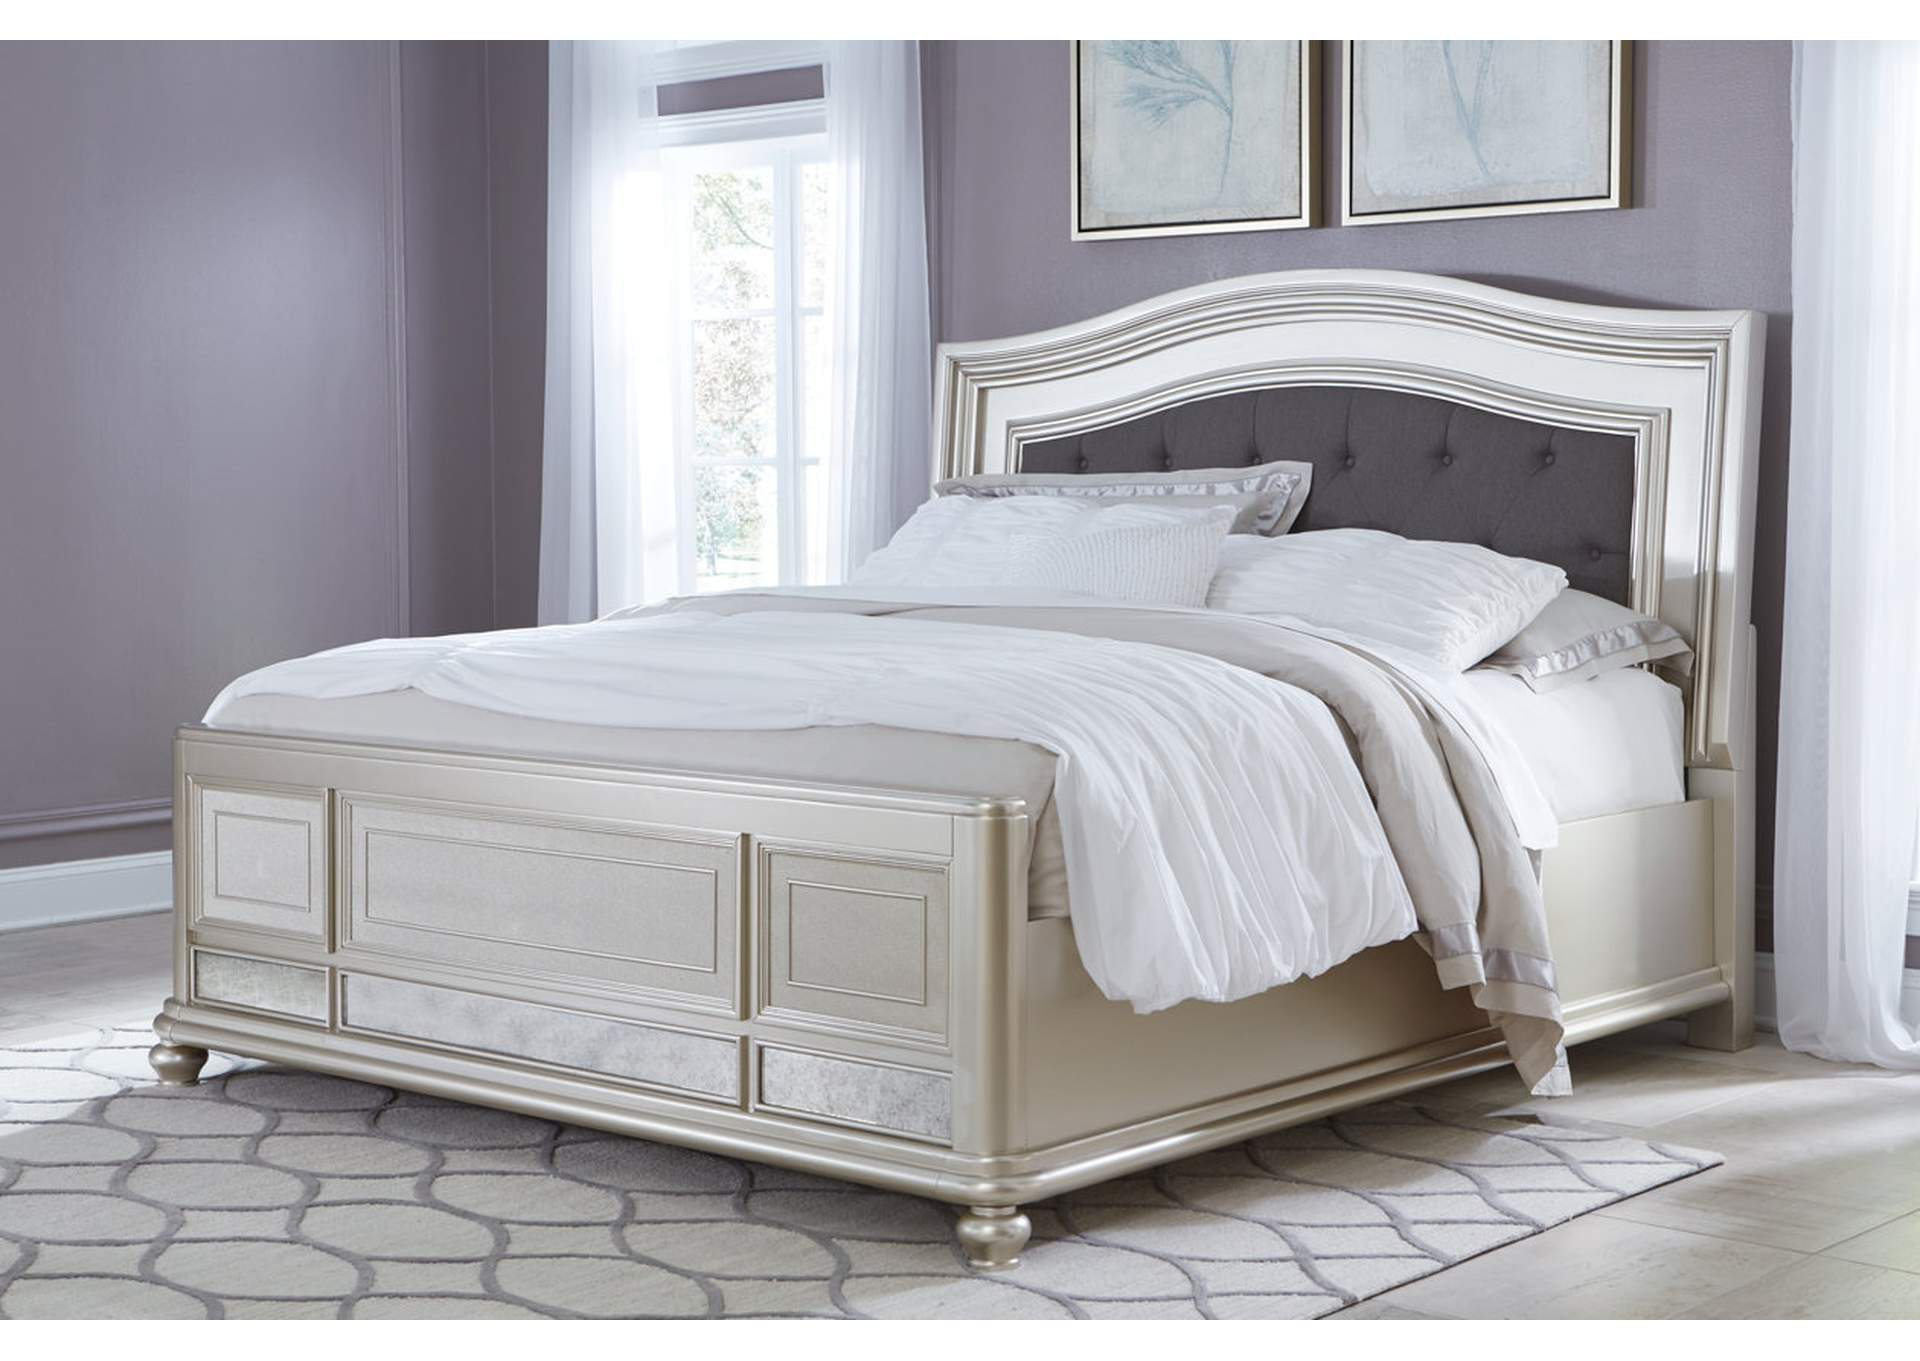 Coralayne Silver California King Upholstered Bed,Signature Design By Ashley